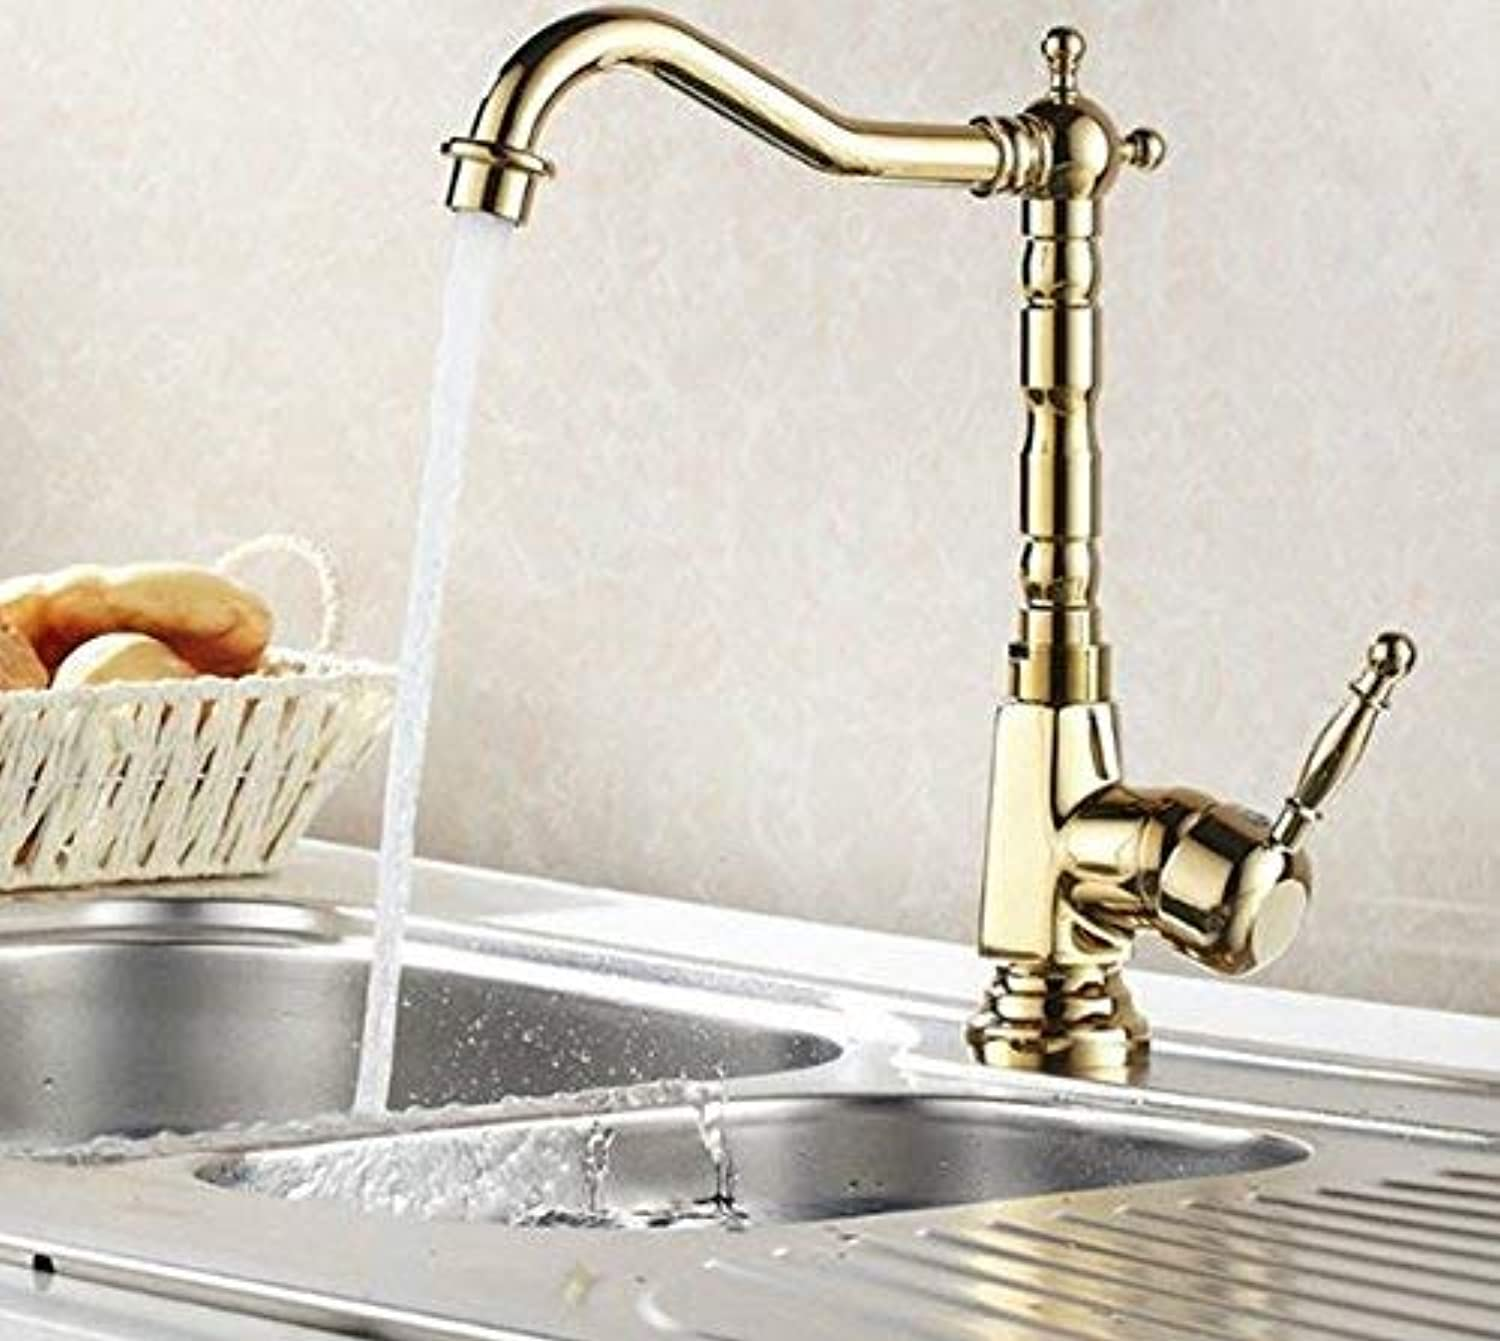 Oudan New gold Hot Cold Mixer Water Tap Kitchen Bathroom Wash Basin Sink Faucet 8105K (color   -, Size   -)